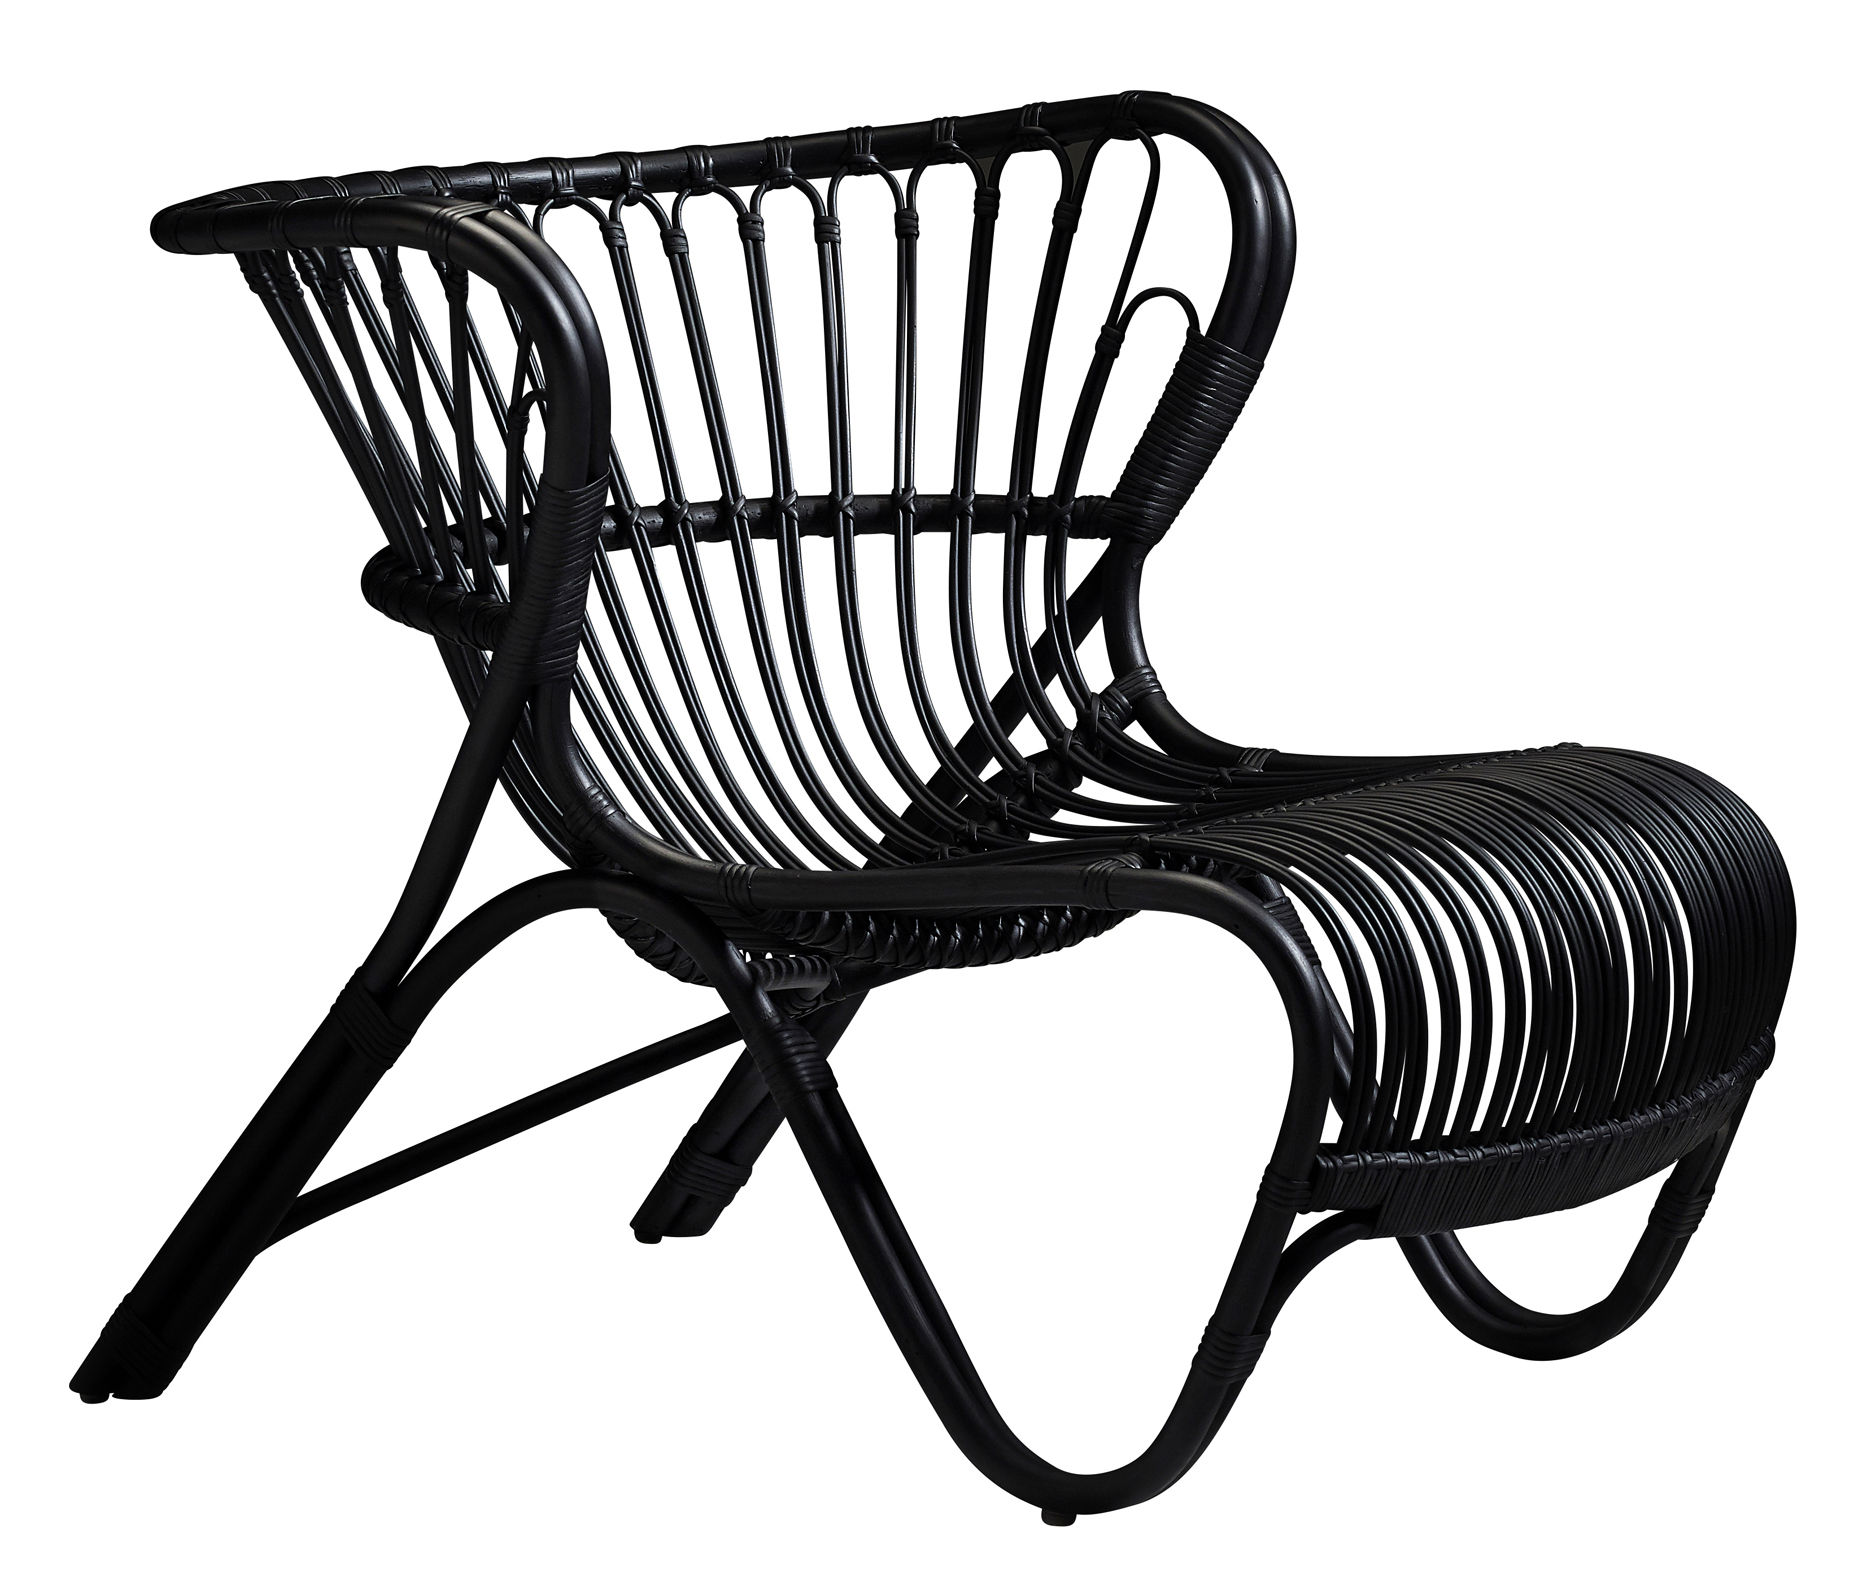 Furniture - Armchairs - Fox Lounge Armchair - Reissue 1936 by Sika Design - Black - Rattan